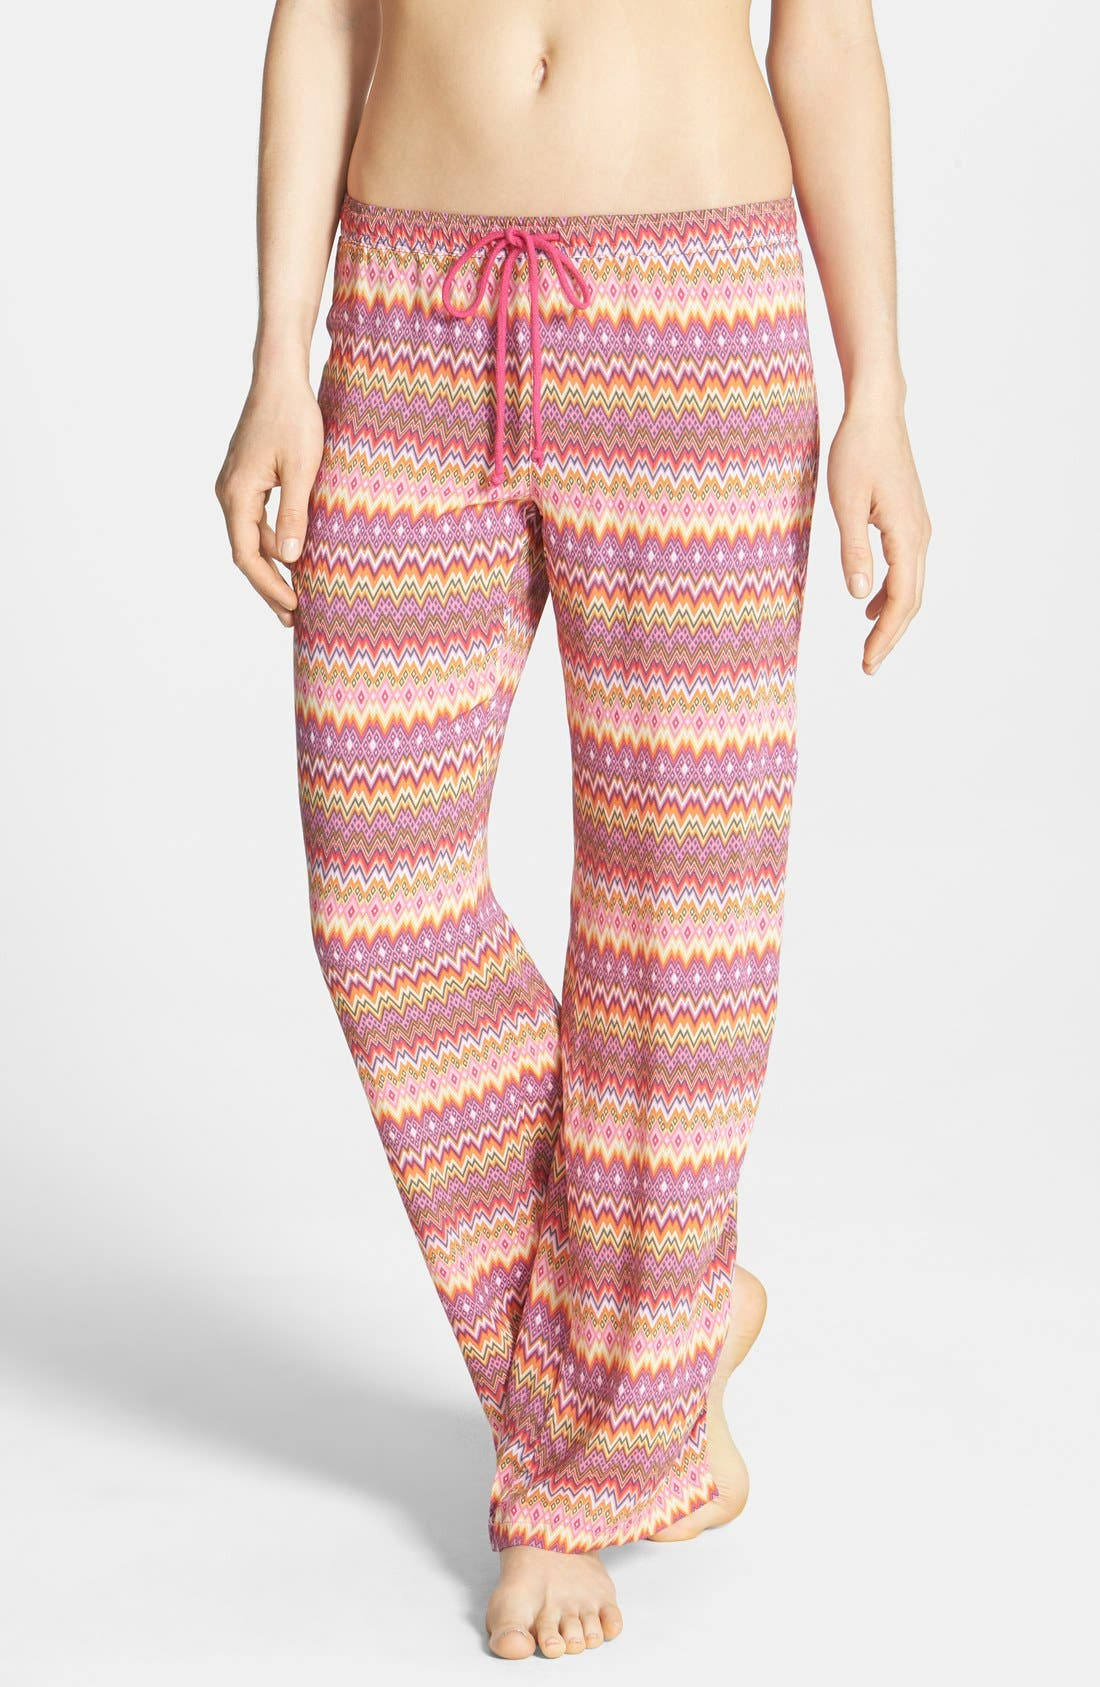 Alternate Image 1 Selected - PJ Salvage 'Challe Chic' Pants (Nordstrom Exclusive)